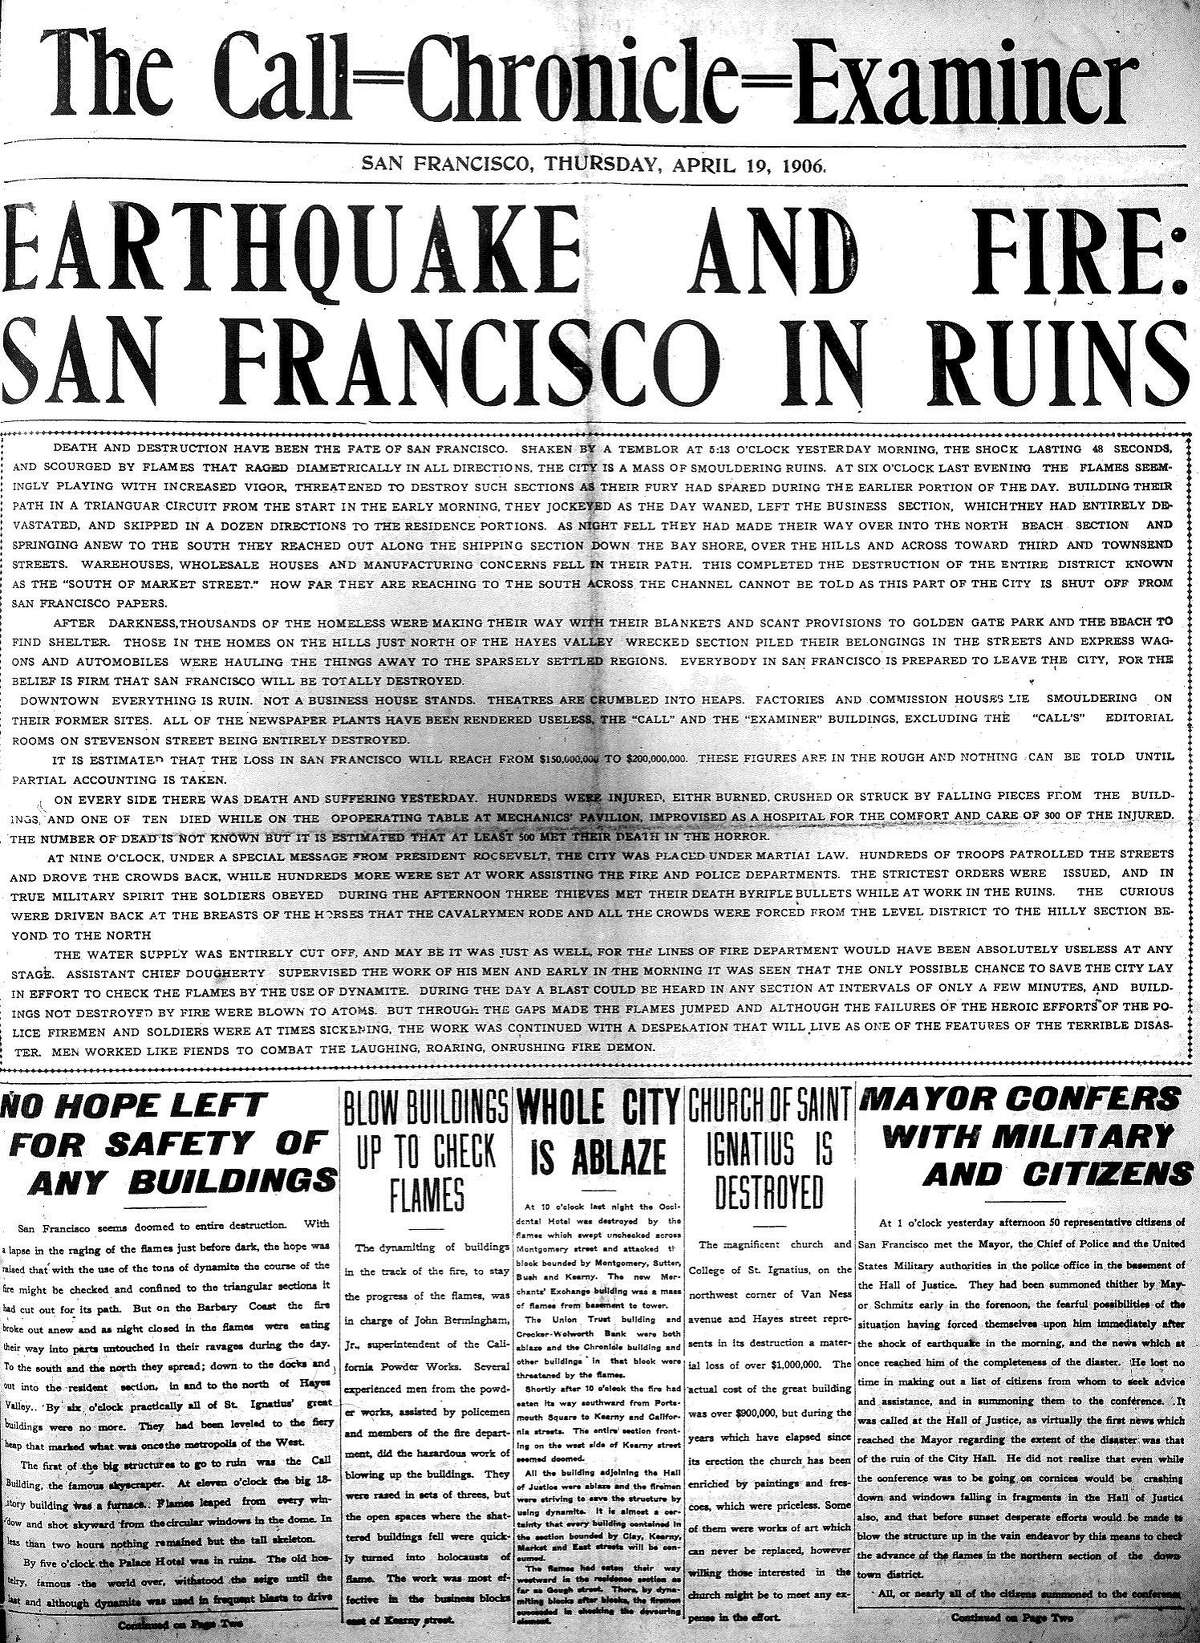 """April 19, 1906 � """"Death and destruction have been the fate of San Francisco."""" So reads the lead sentence in the Call-Chronicle-Examiner (a rare collaboration of the city's newspapers) a day after a massive earthquake devastates the Bay Area region. As many as 3,000 people die as a direct or indirect result of the quake, tens of thousands of buildings are ruined and more than 200,000 are left homeless."""